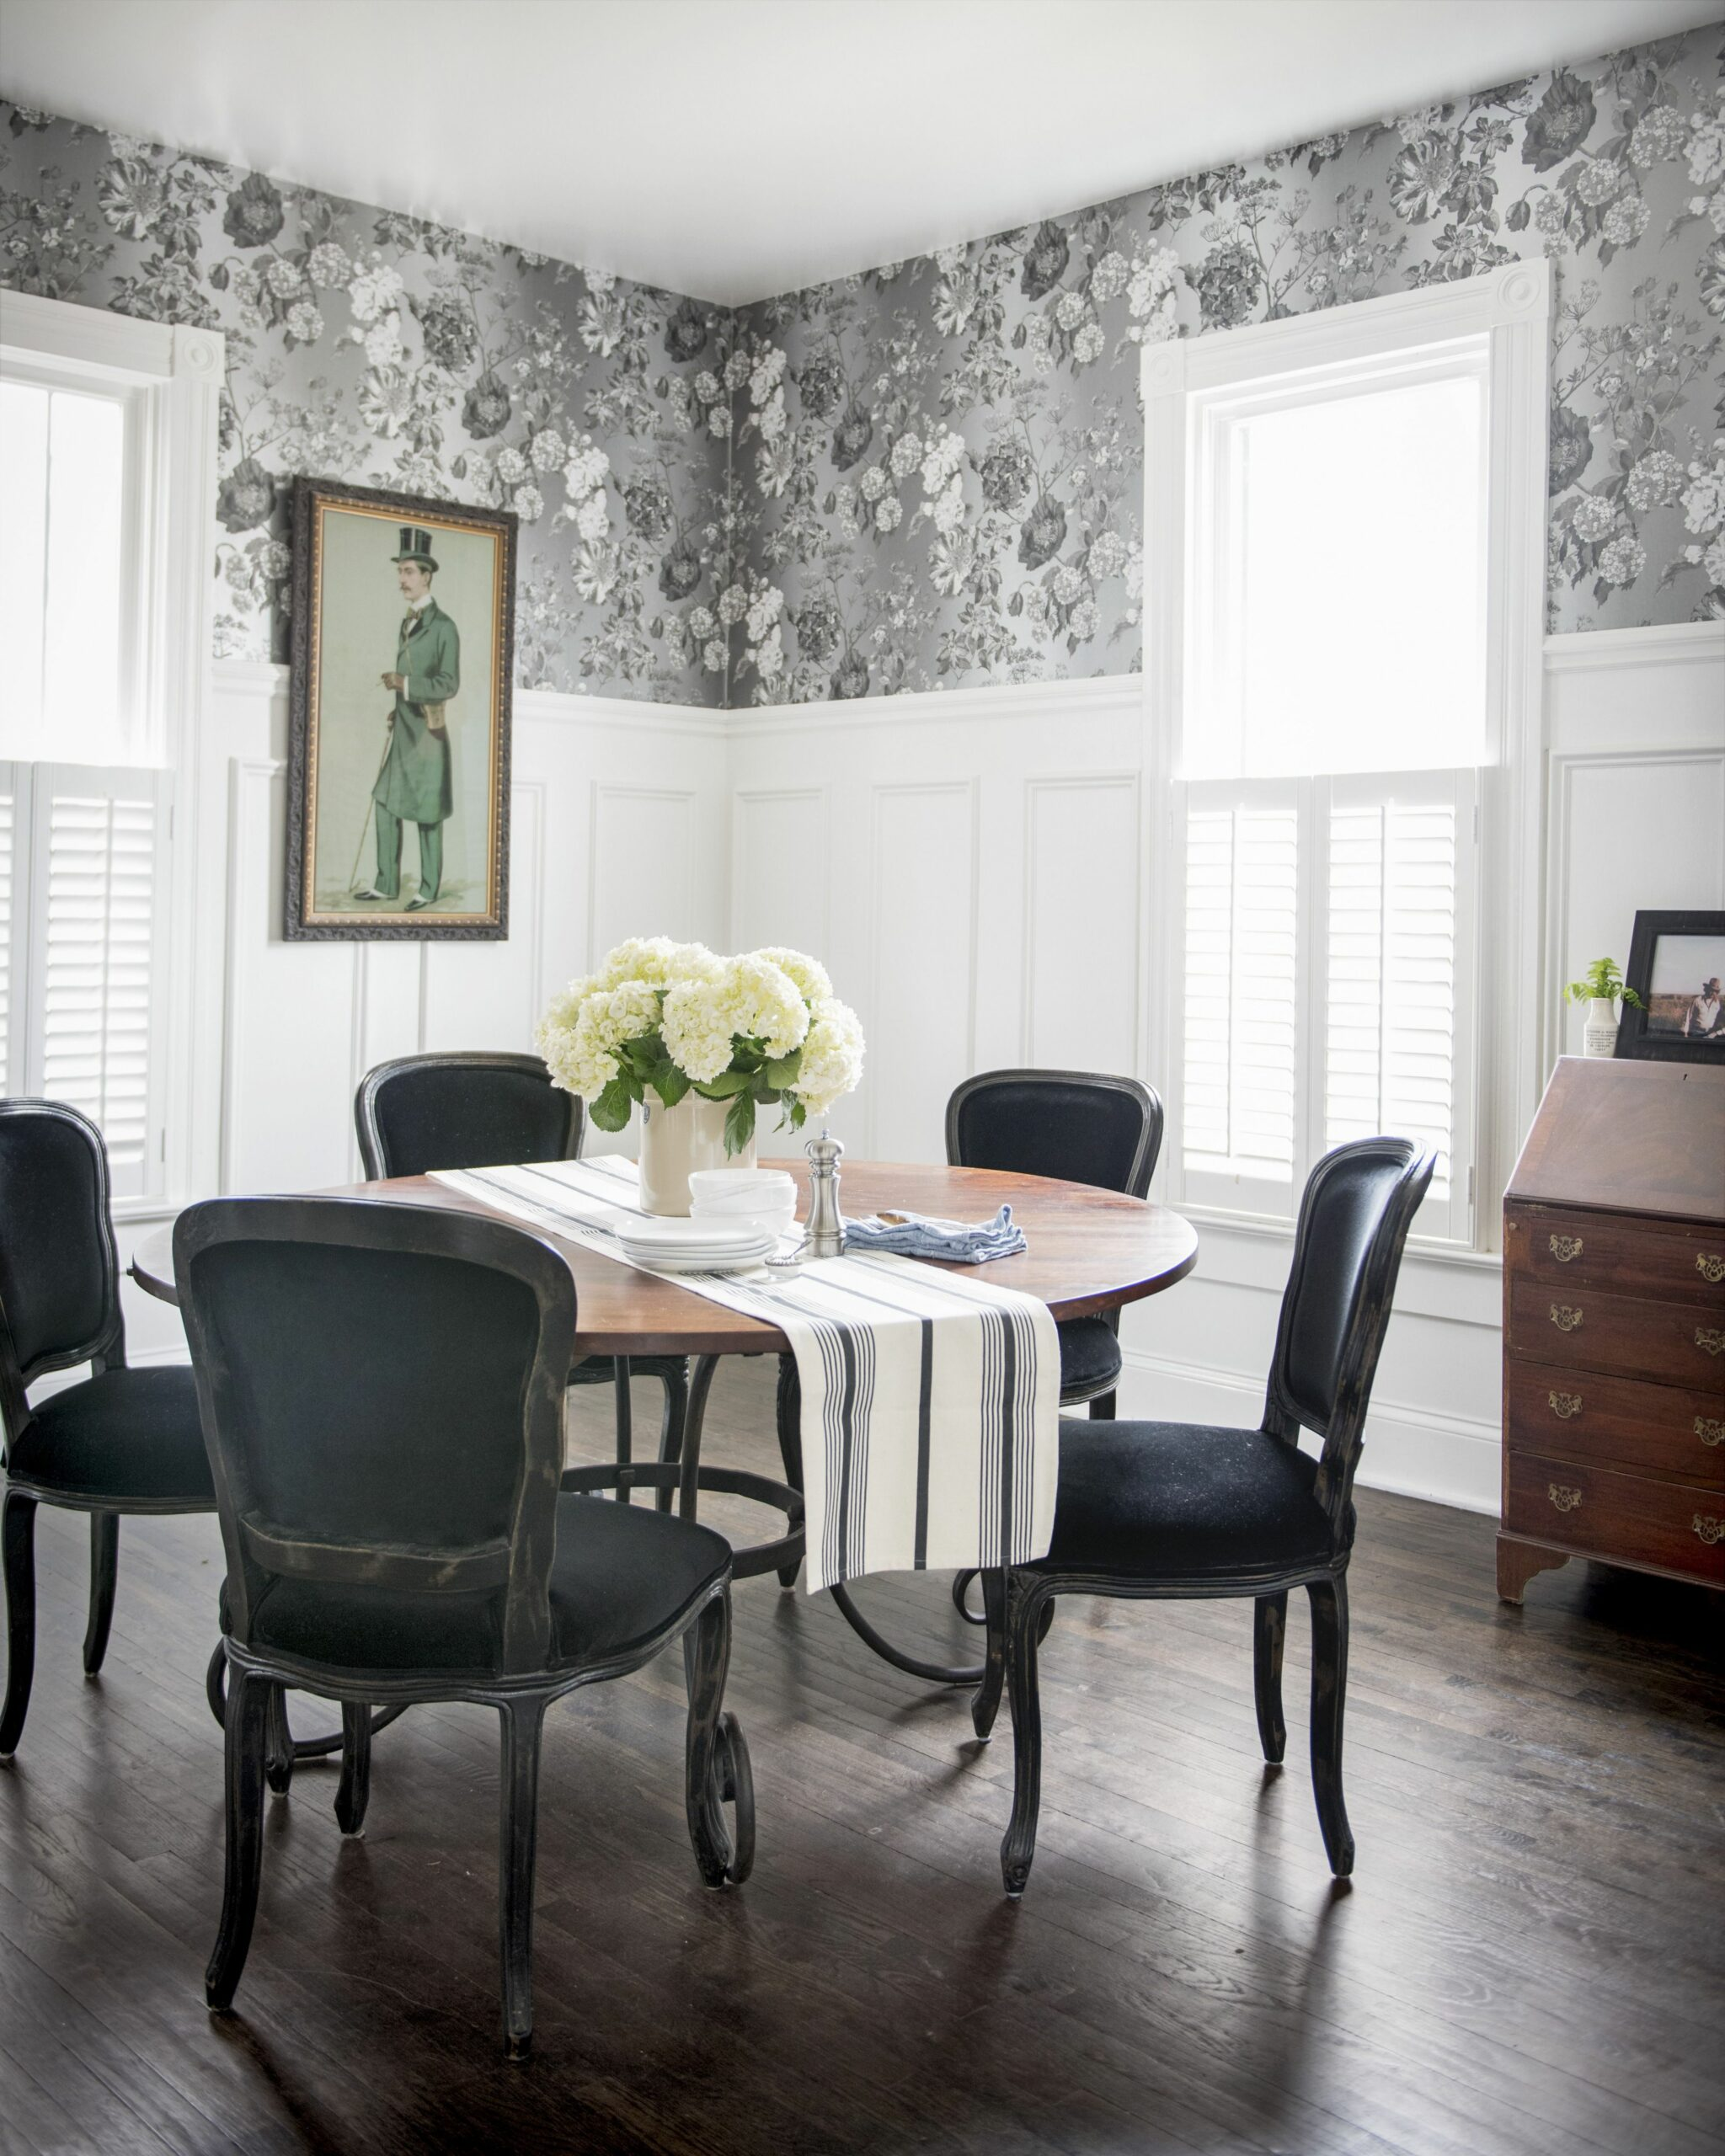 11 Best Dining Room Decorating Ideas - Pictures of Dining Room Decor - dining room wall ideas